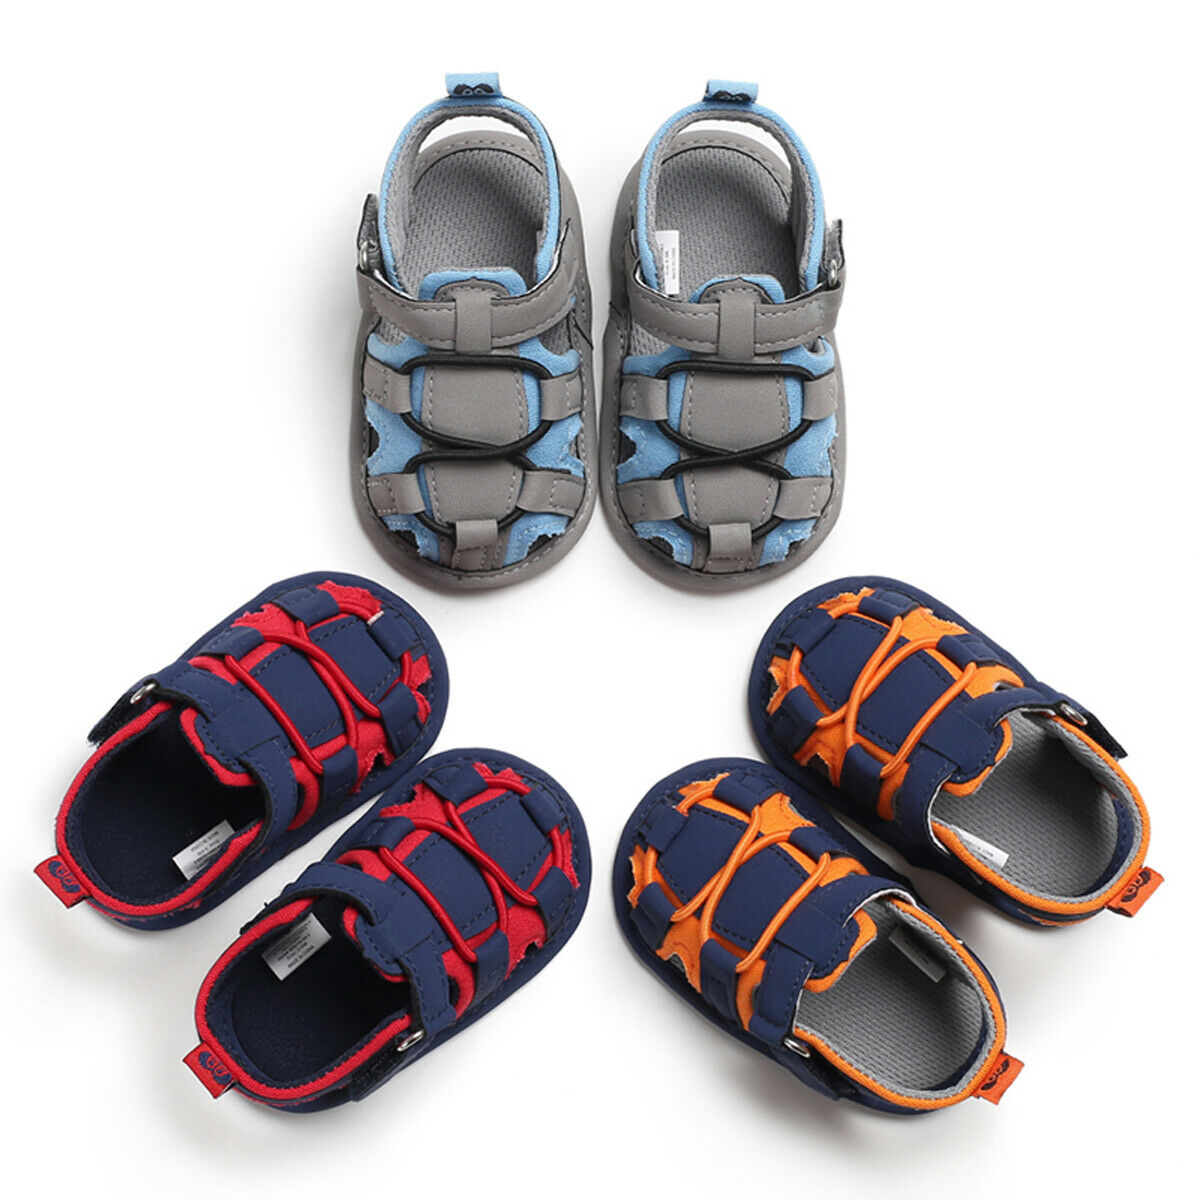 0-18 Months Newborns Shoes Infant Boys Girls  Buckled Sandals Soft Sole Shoes